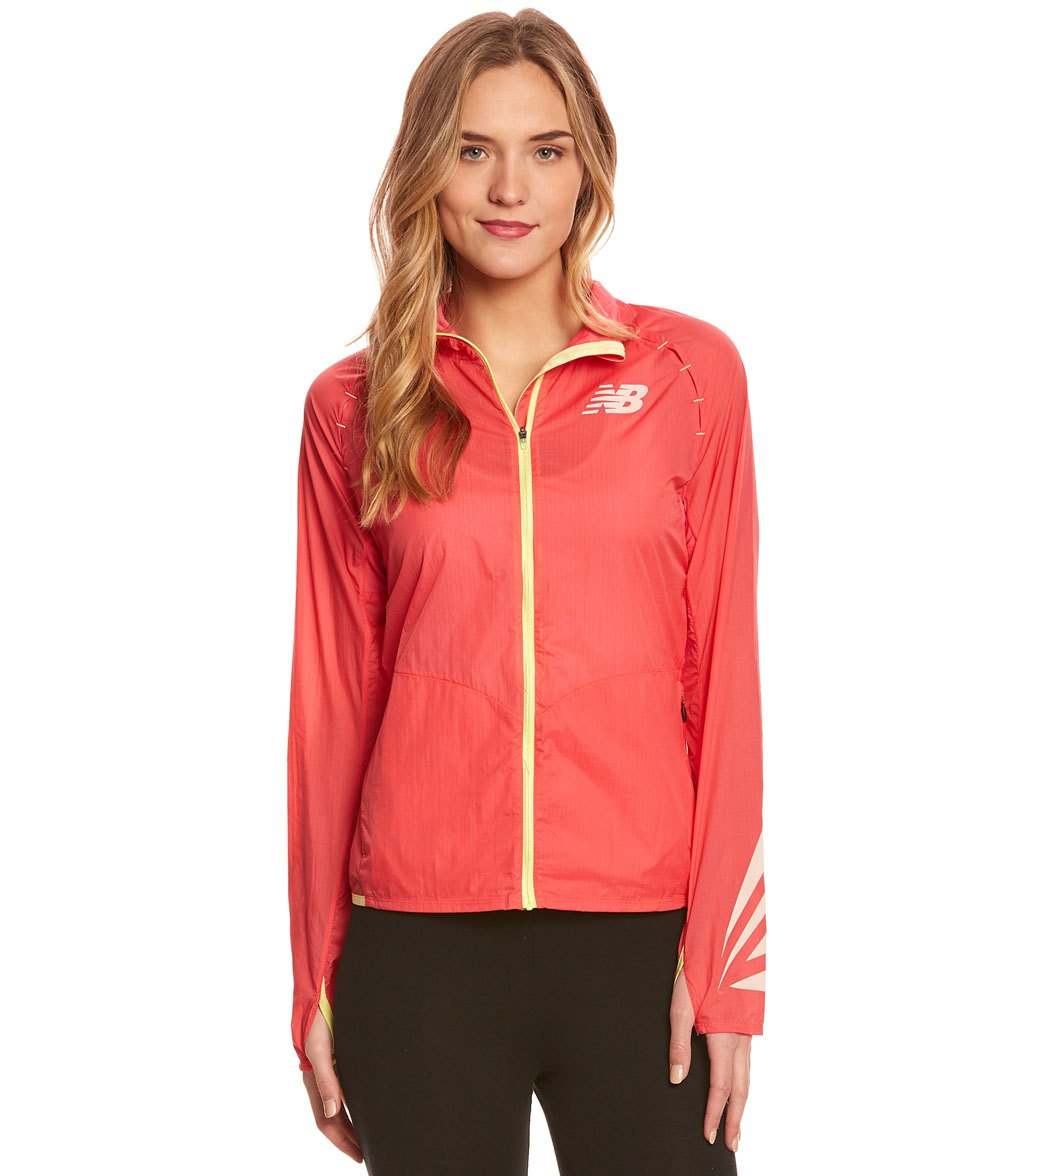 erupción Parpadeo gatito  New Balance Women's Boylston Running Jacket at SwimOutlet.com - Free  Shipping